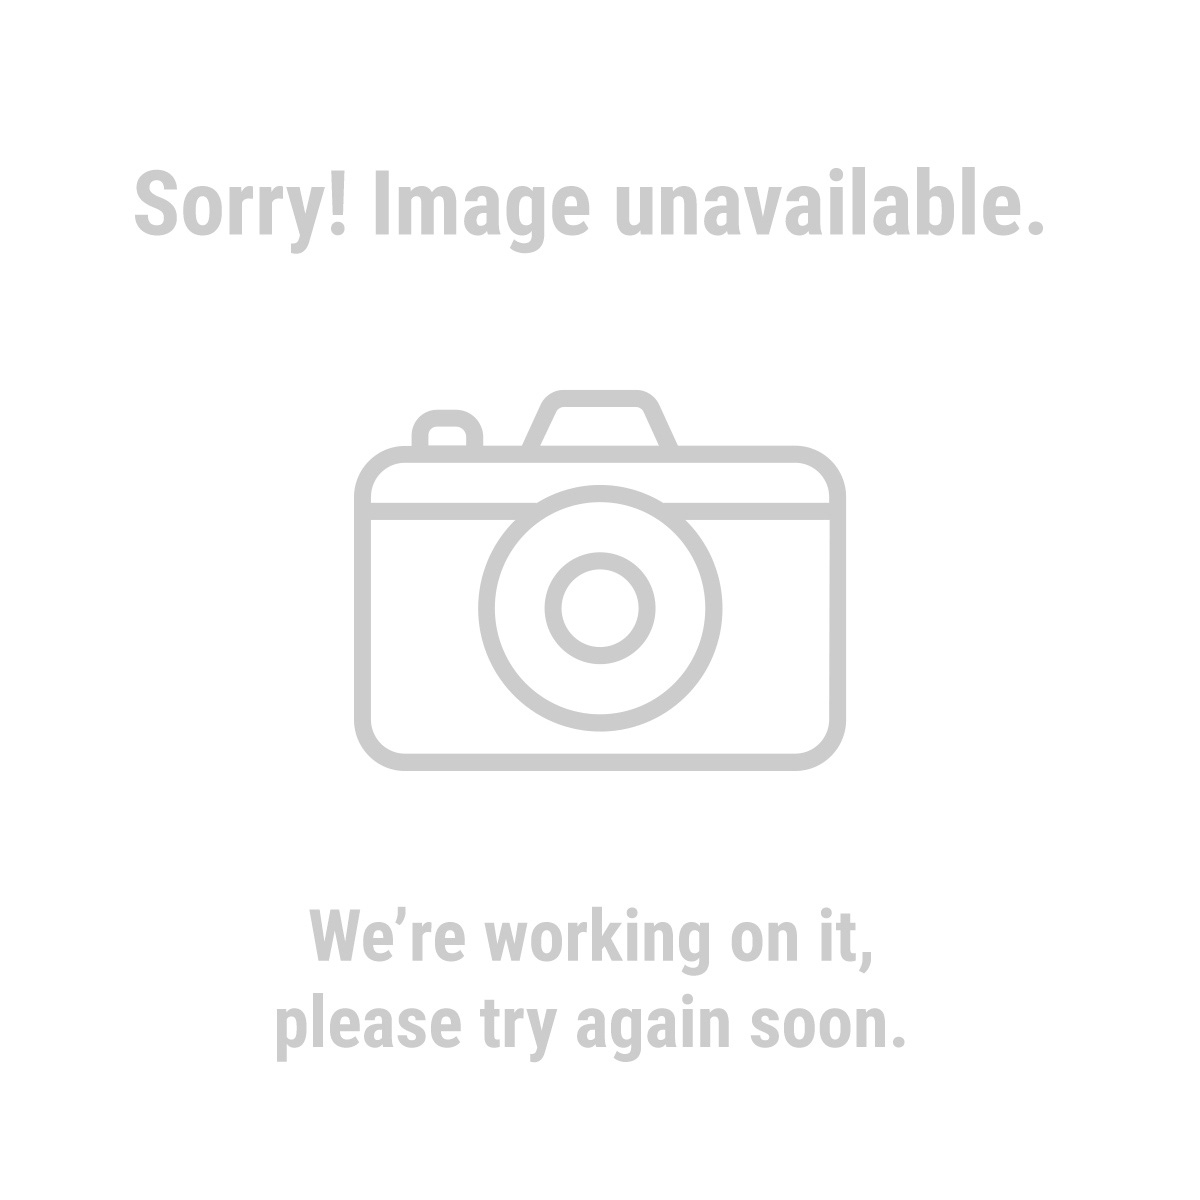 Warrior 68113 13 Piece Bi-metal Hole Saw Set